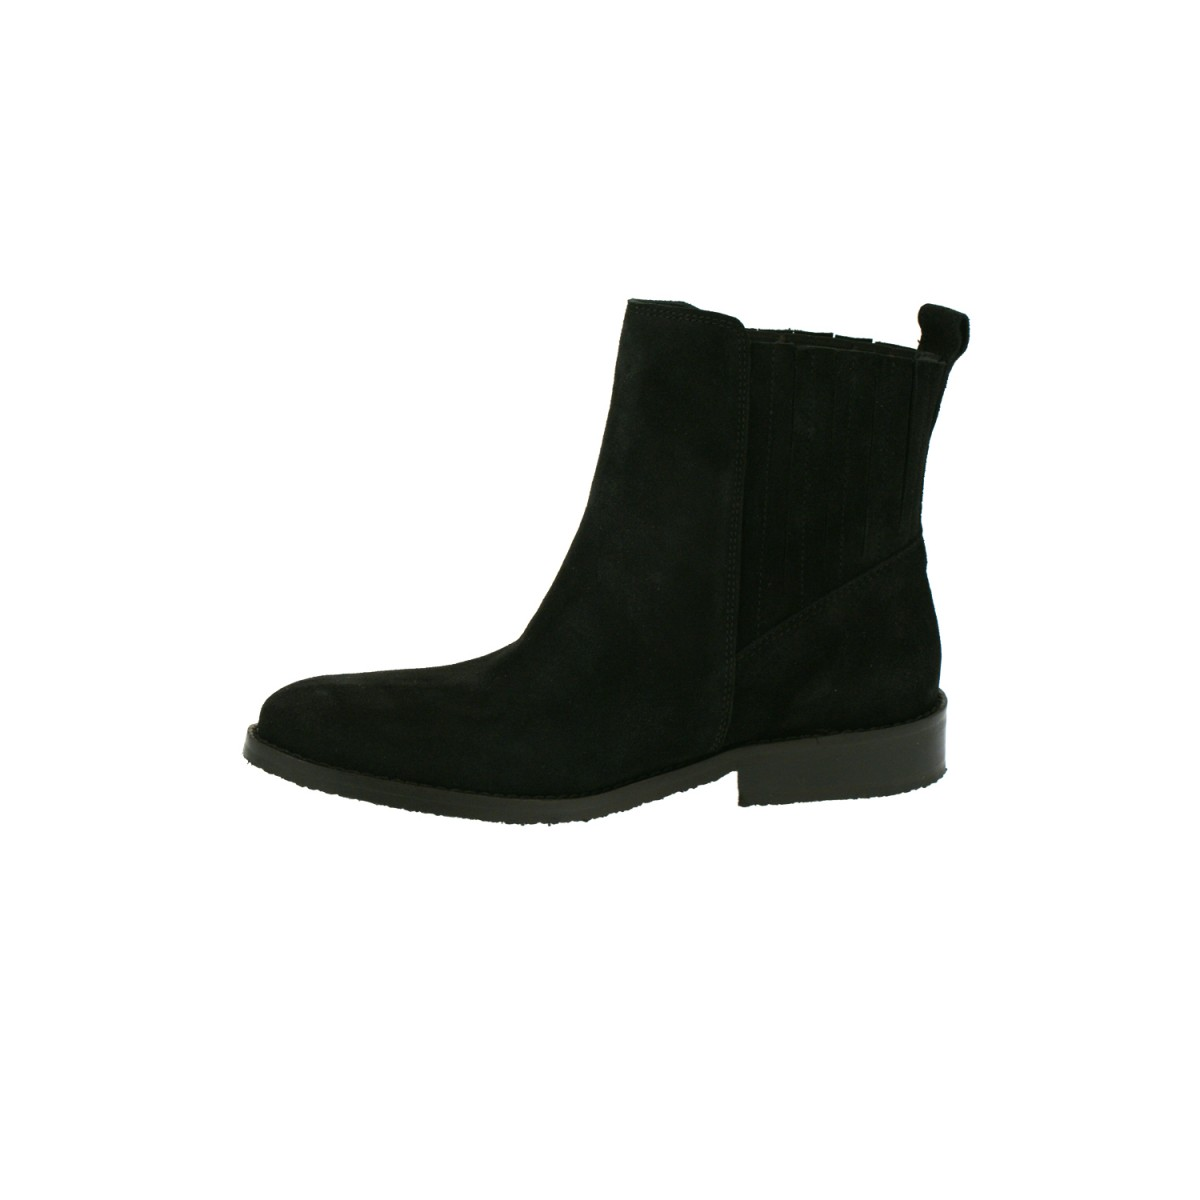 Mentor W7142 Ankle Chelsea Boot Black Waxed Suede-35